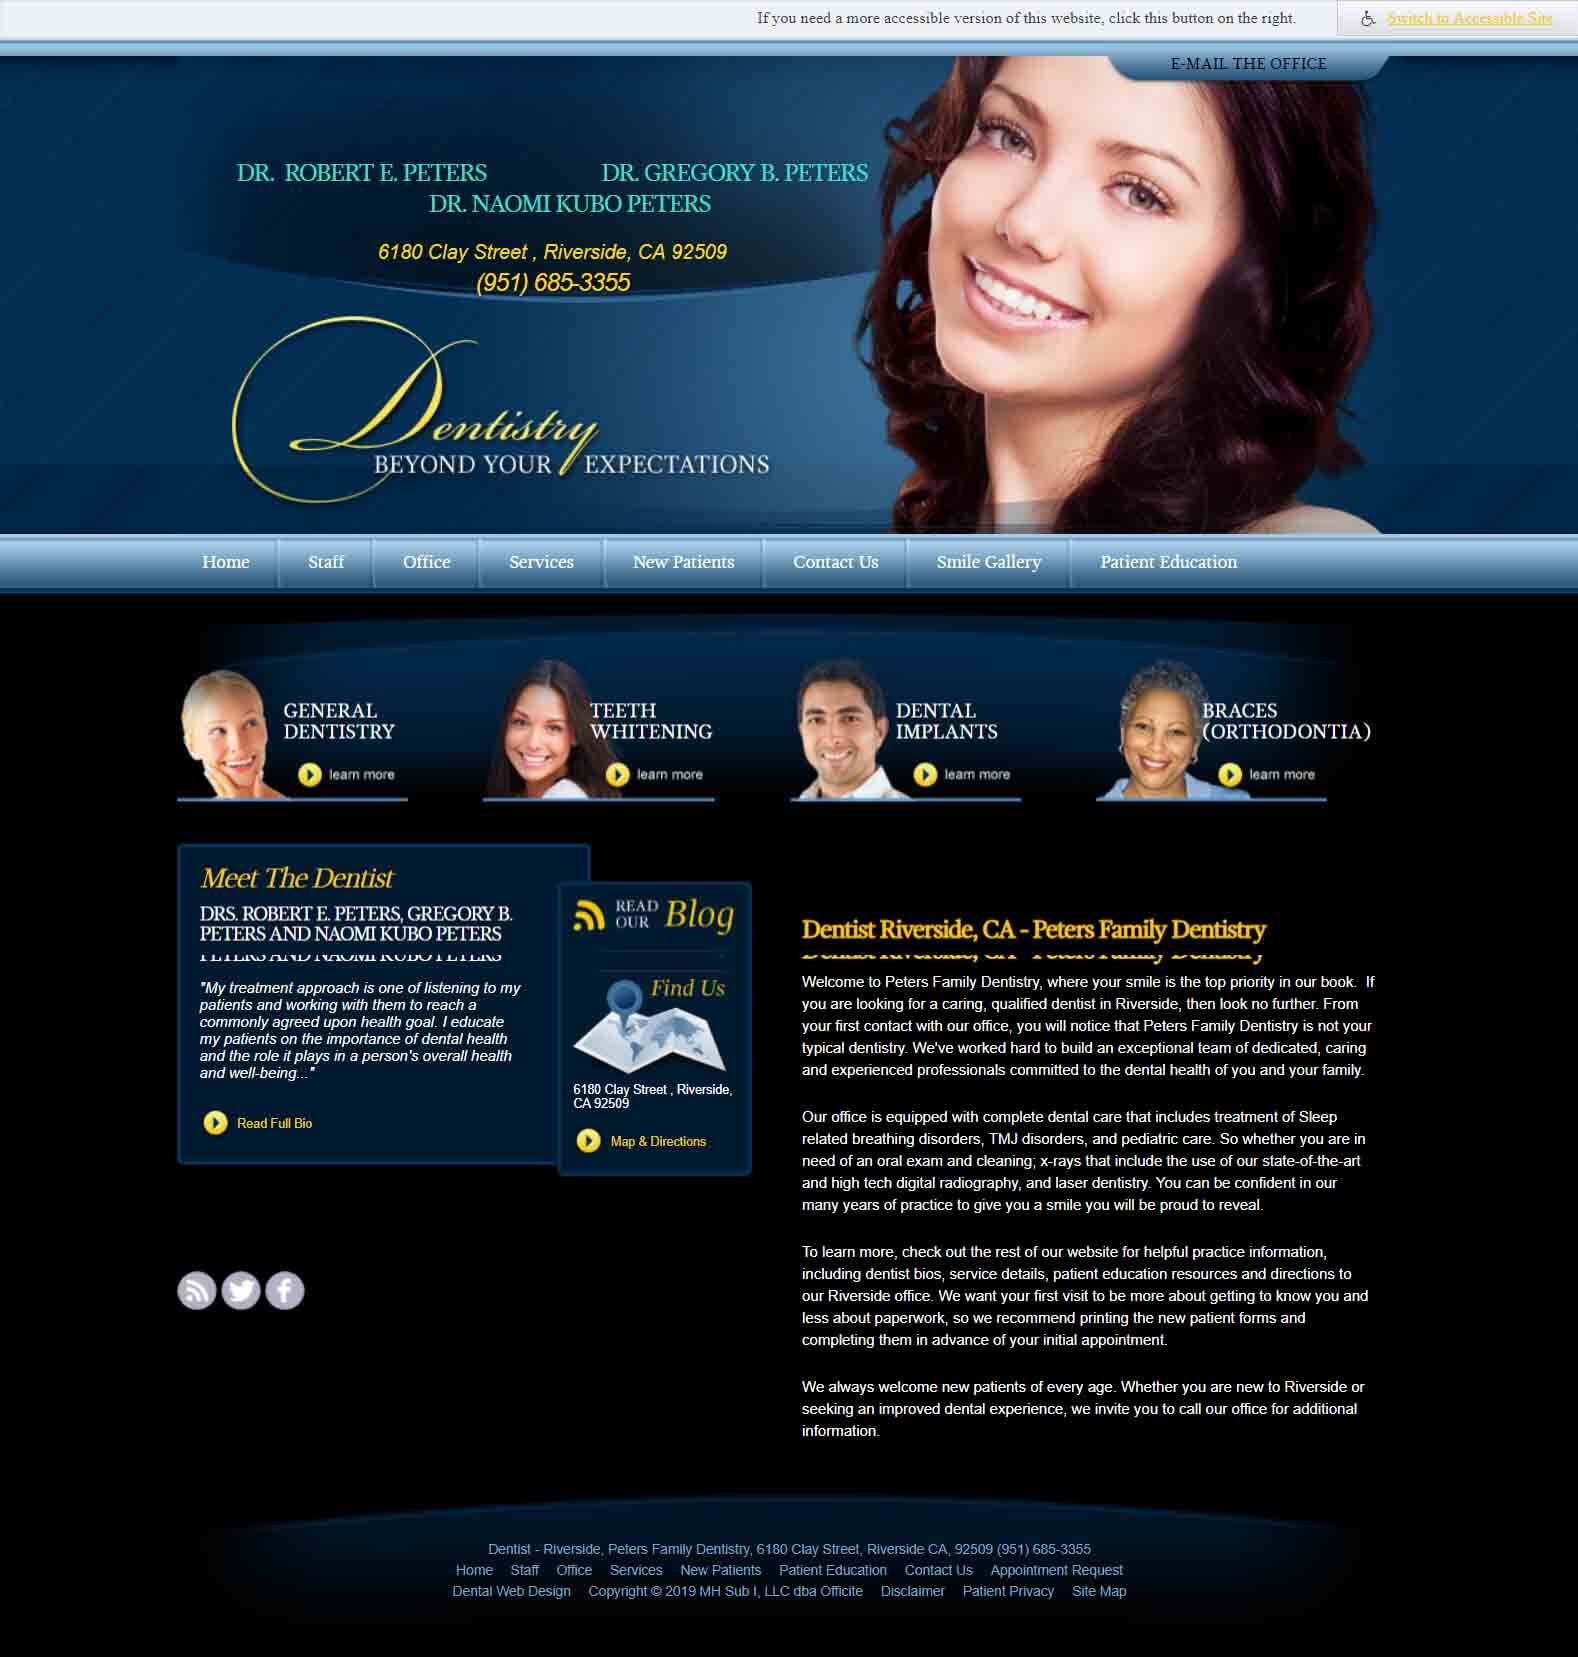 Old Peters Family Dentistry Website